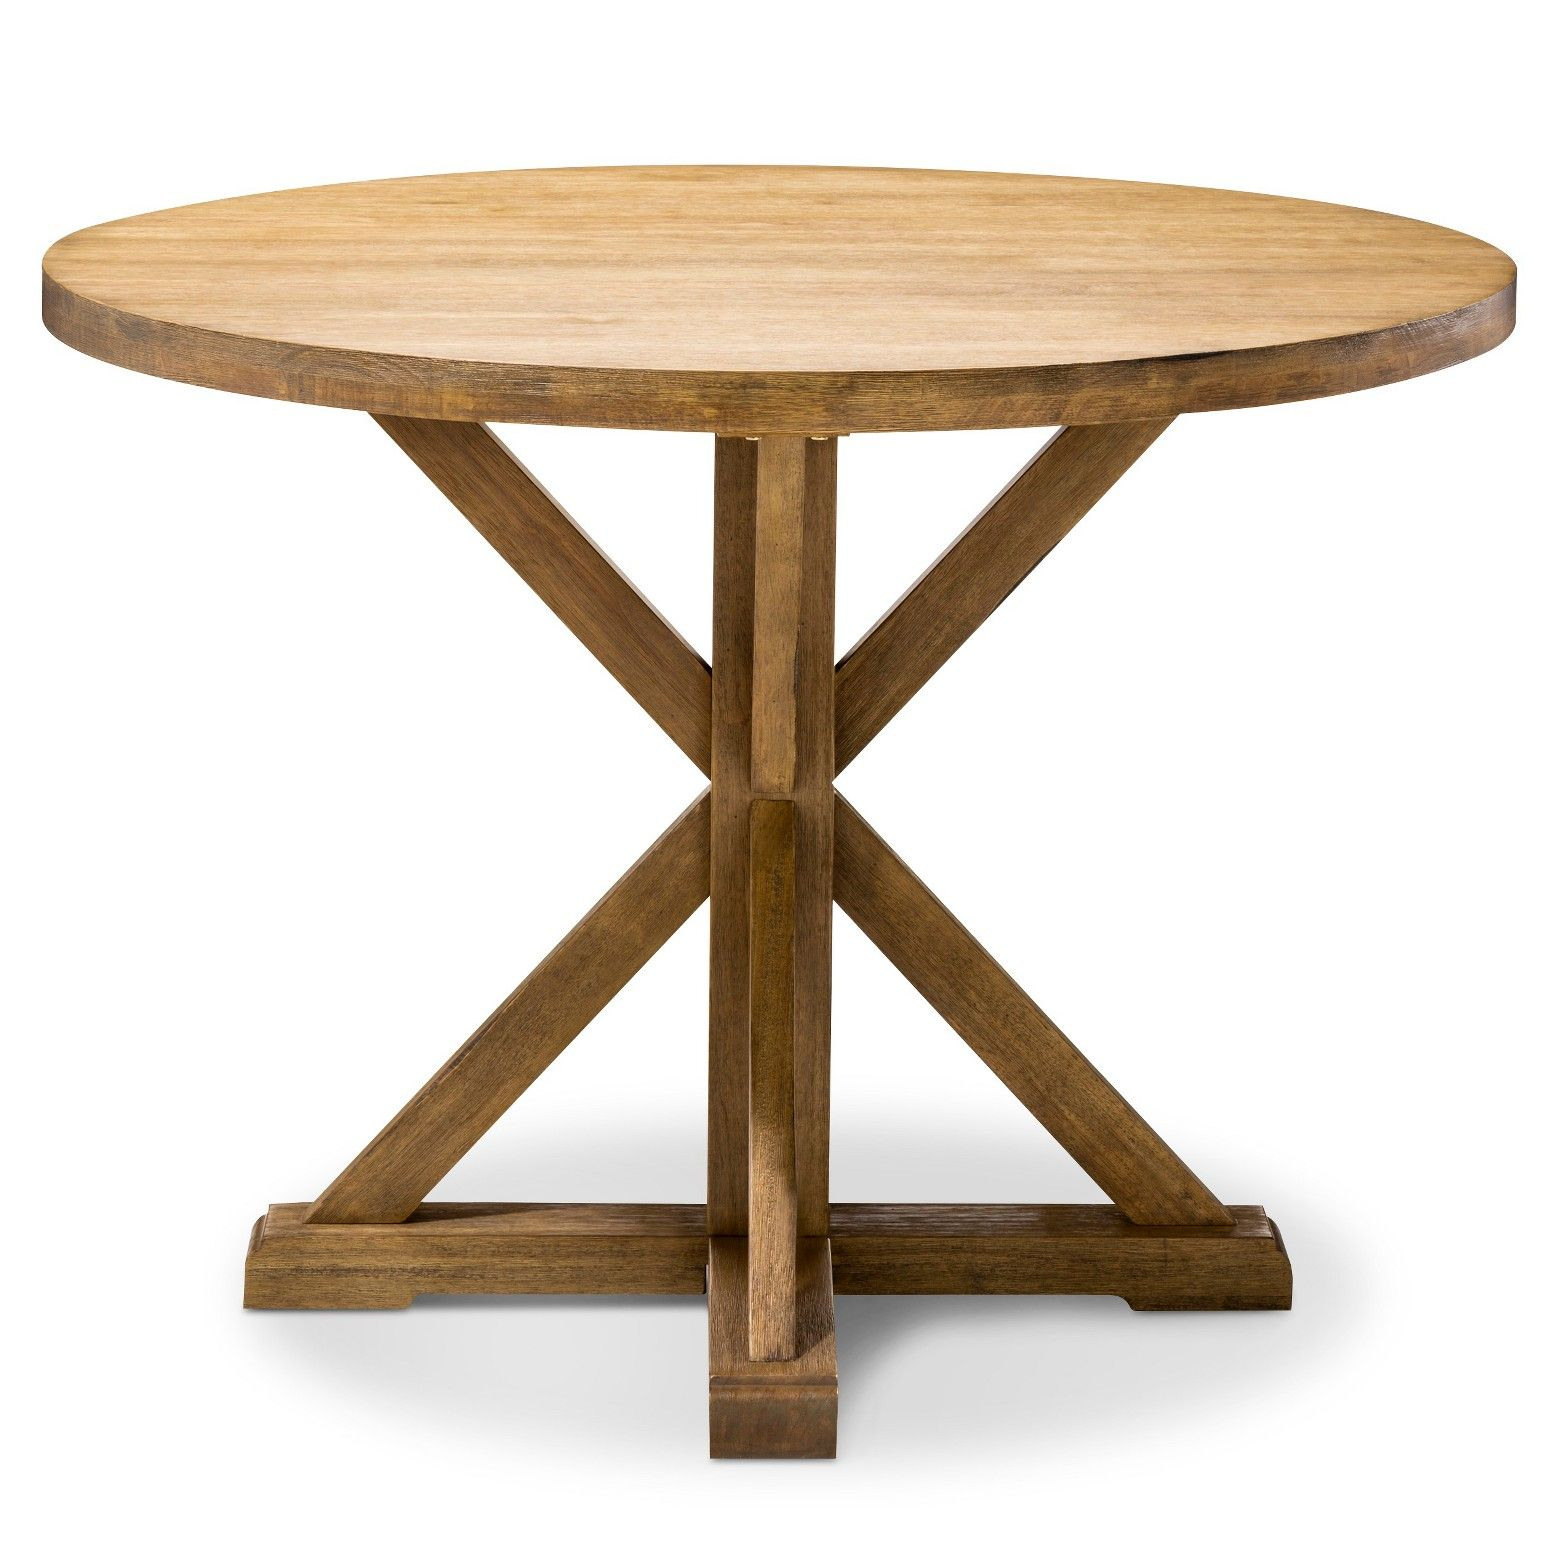 The Farmhouse Round Dining Table Has That Expertly Crafted Look That Brings To Mind Country Artisa Round Dining Table Farmhouse Round Dining Table Dining Table